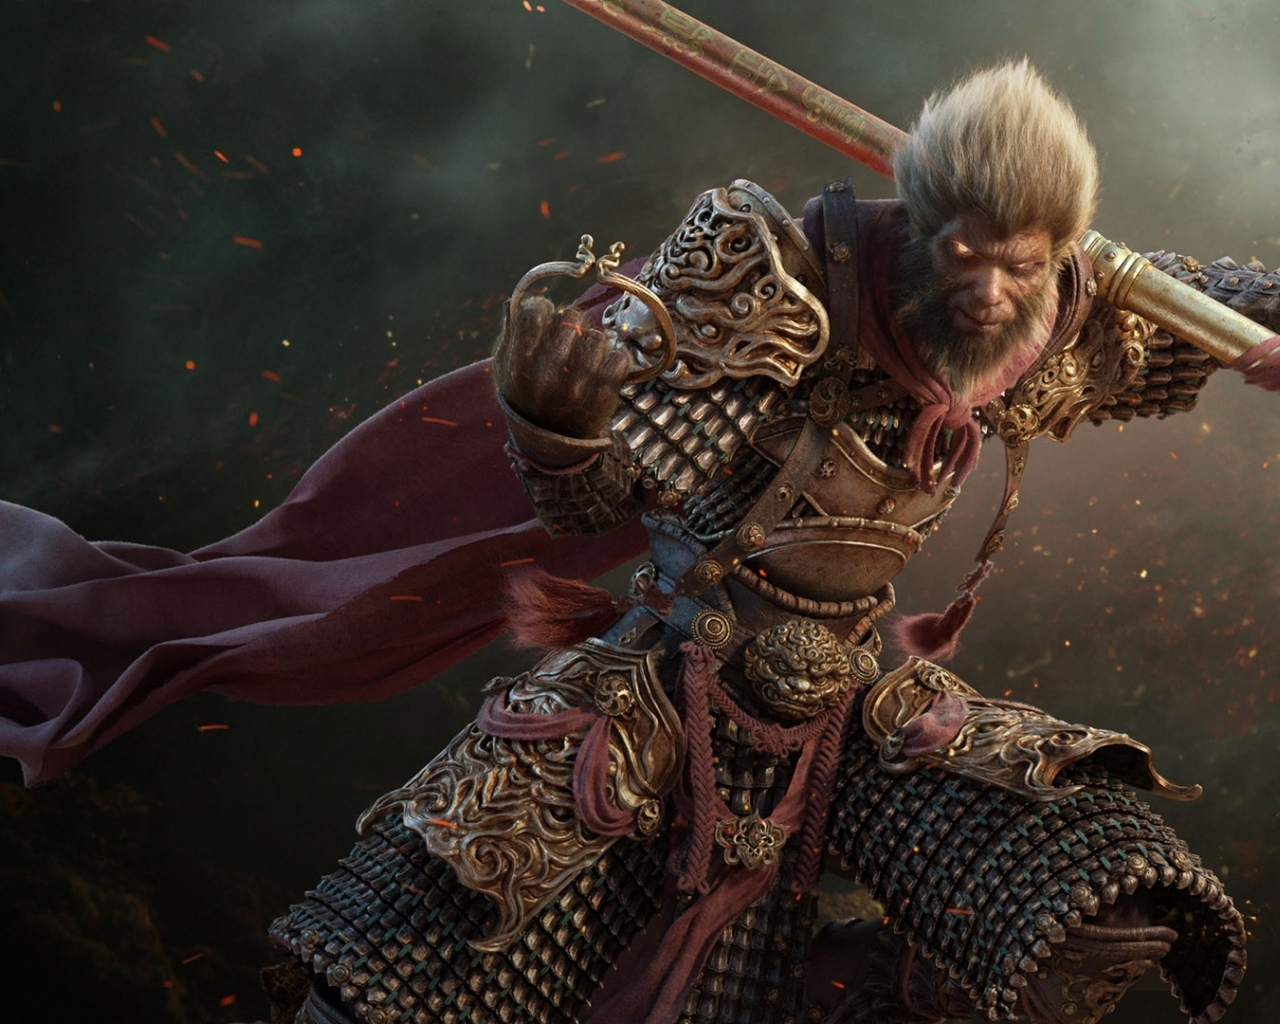 3d Wukong The Monkey King Hd Wallpaper | Wallpaper List 1055